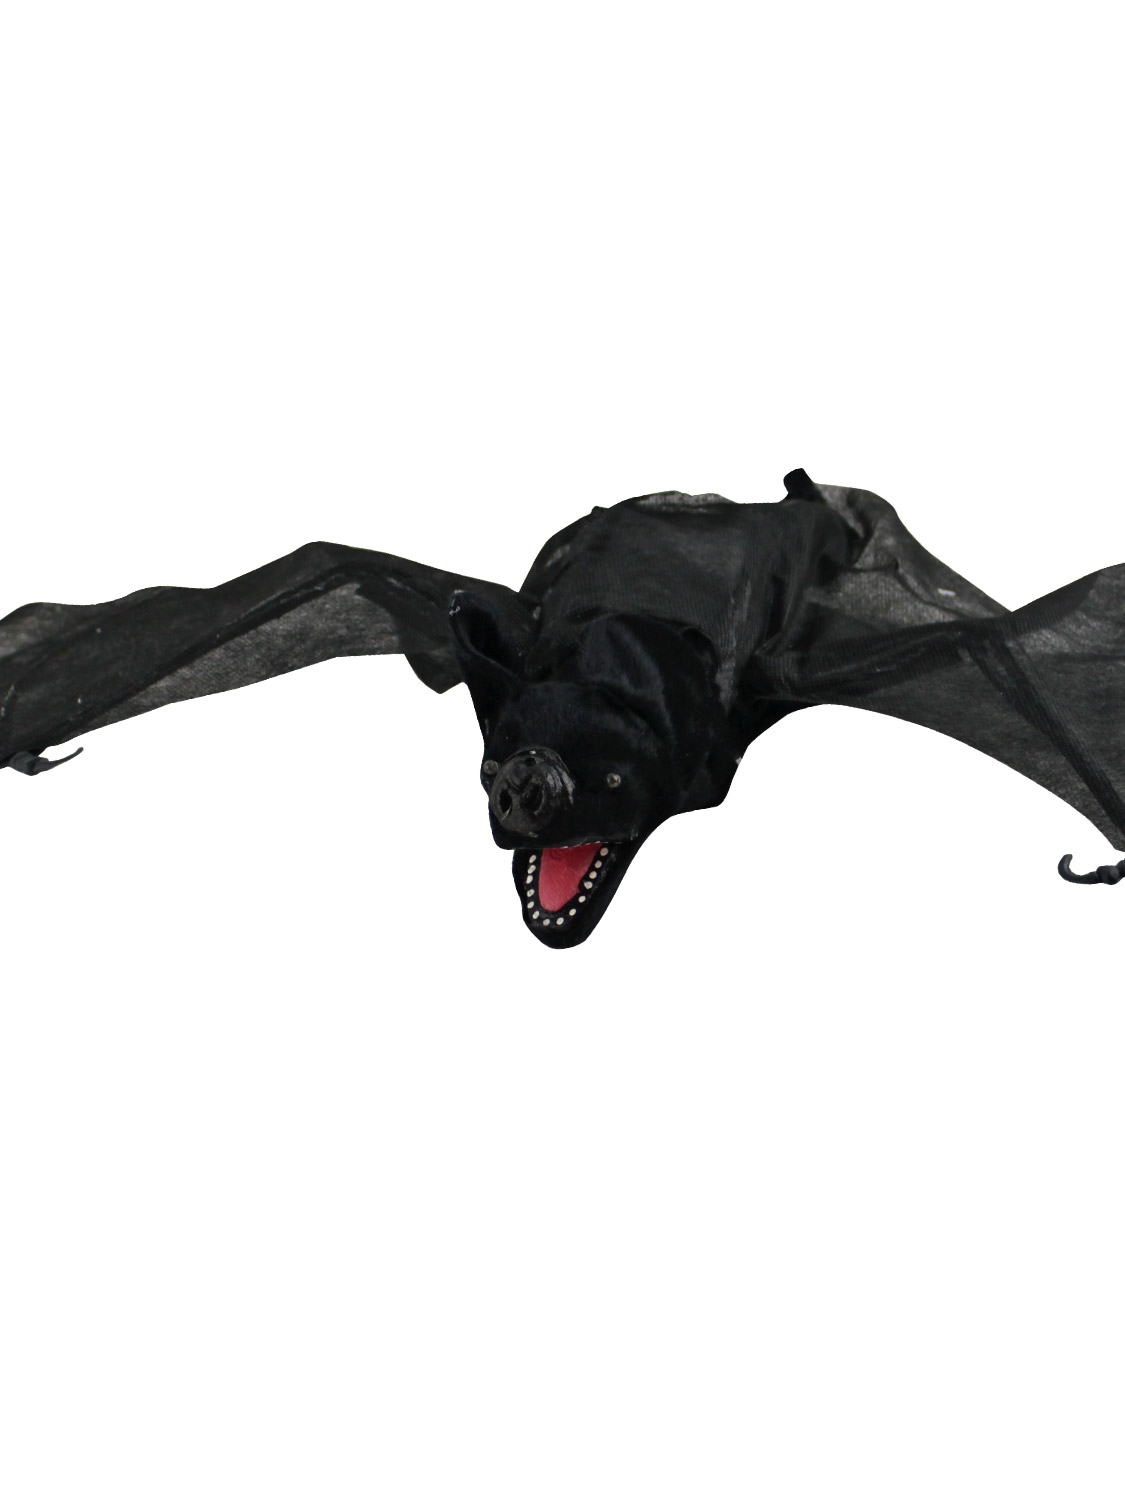 Scary lifesize evil bat light up moving halloween prop for Animated flying bat decoration